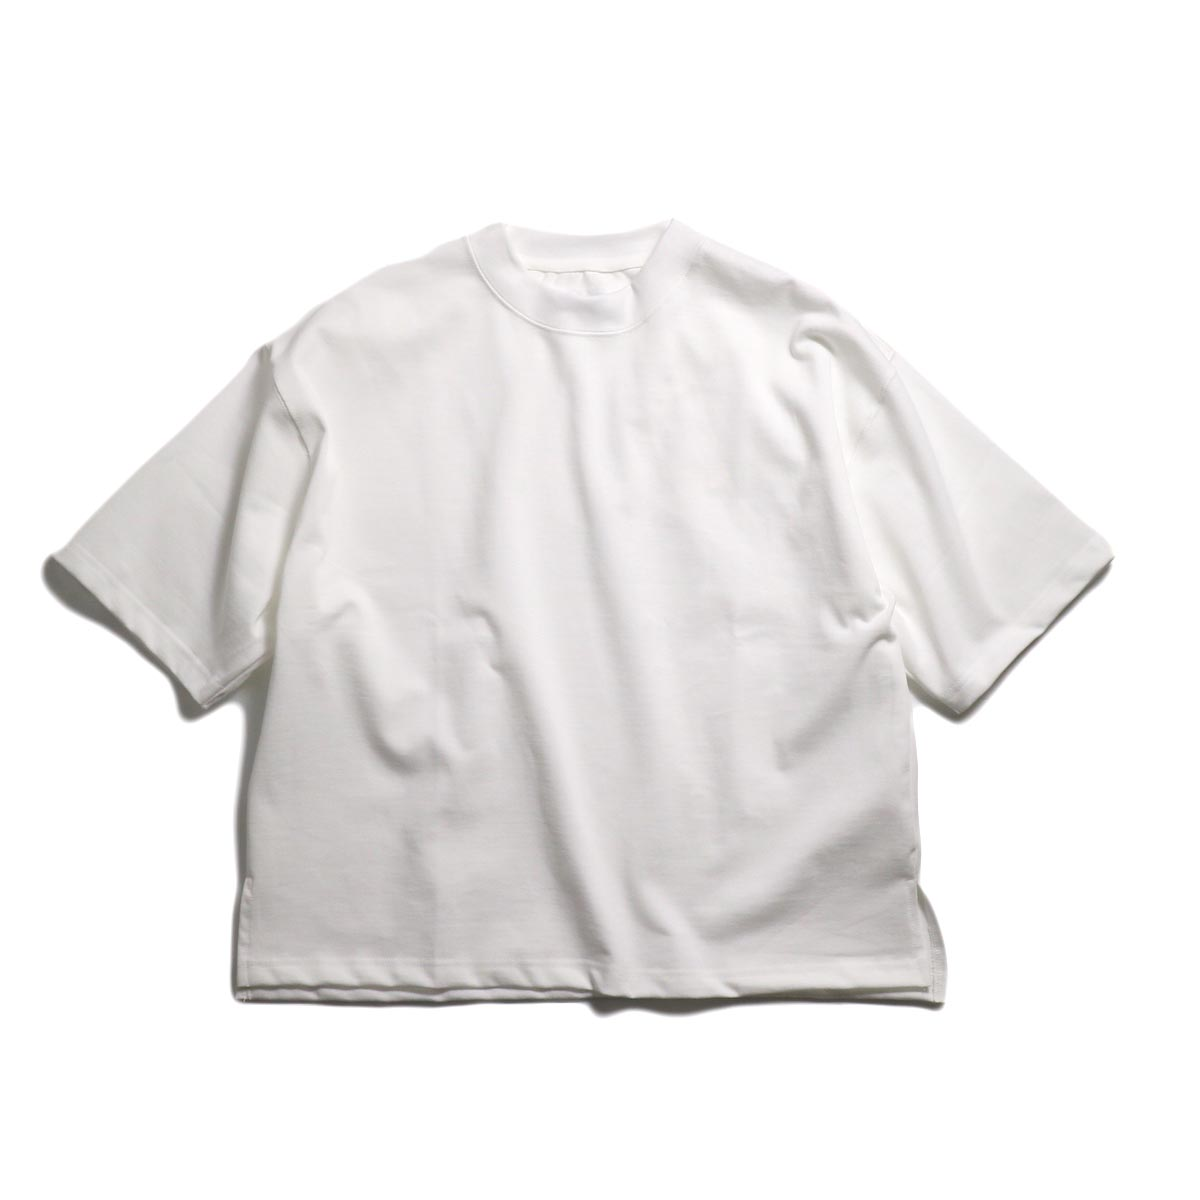 JANE SMITH / Big T Shirt -White